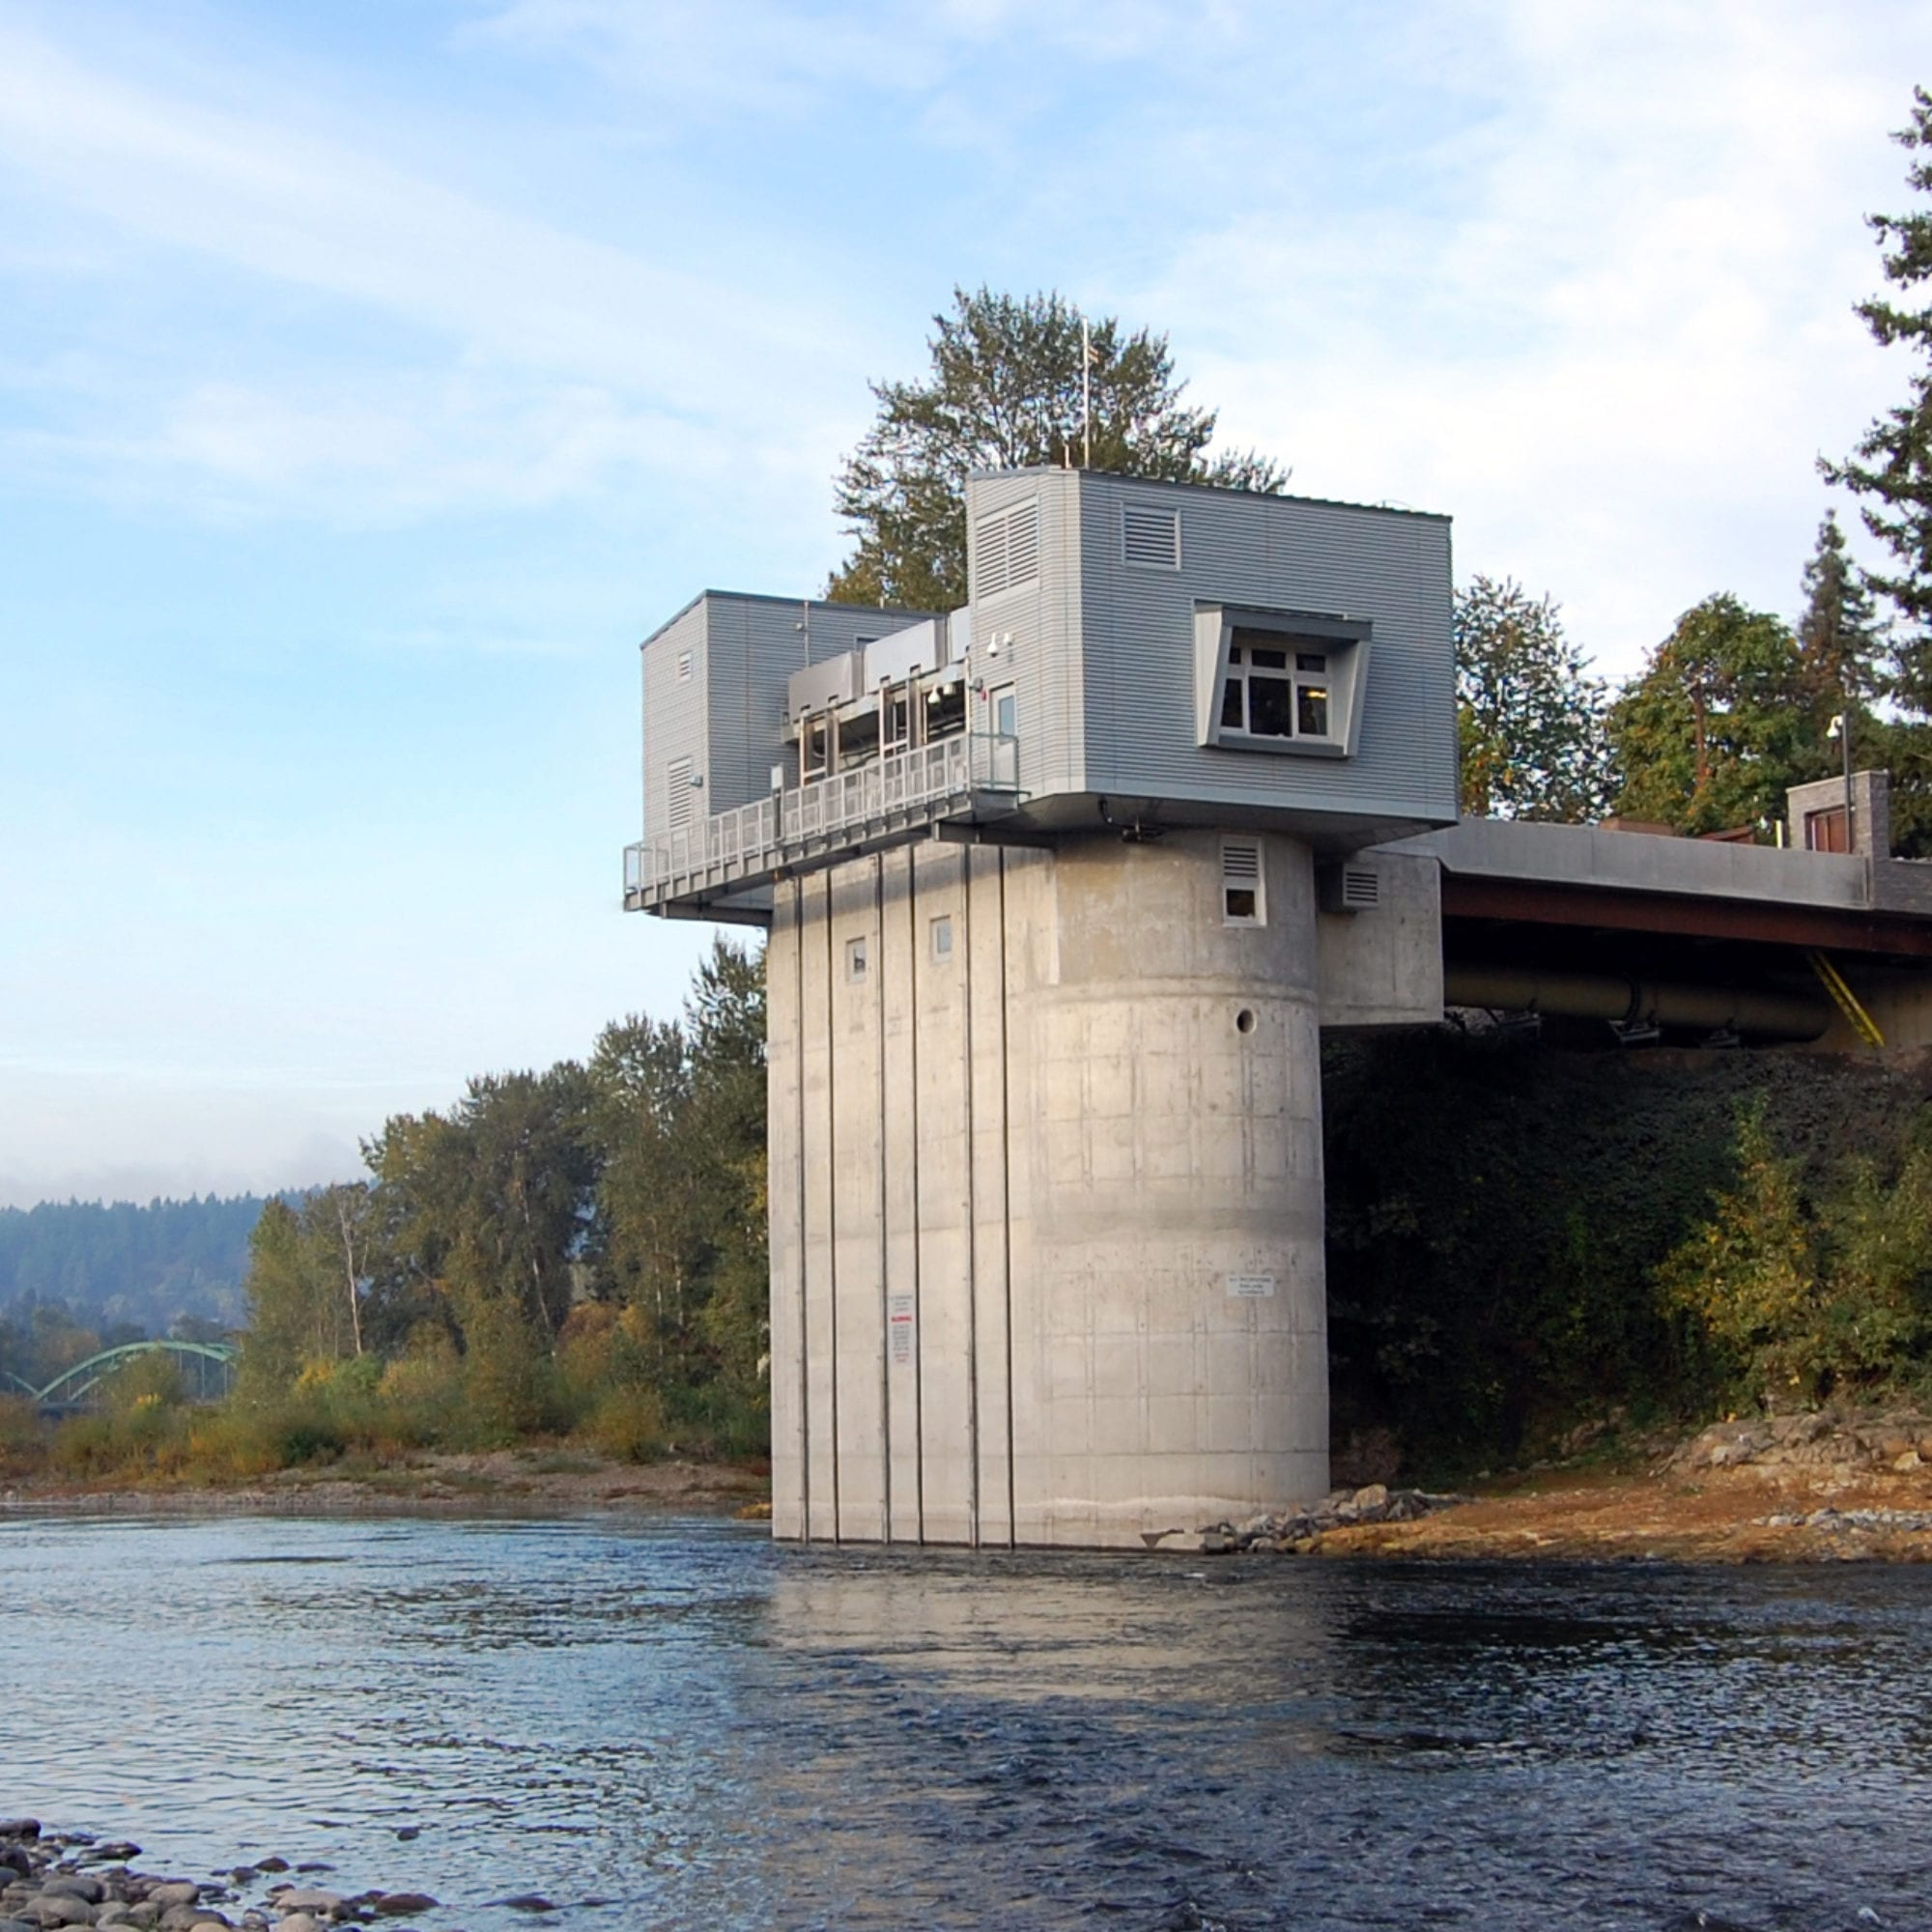 Raw Intake Pump Station, Lake Oswego-Tigard Water Partnership